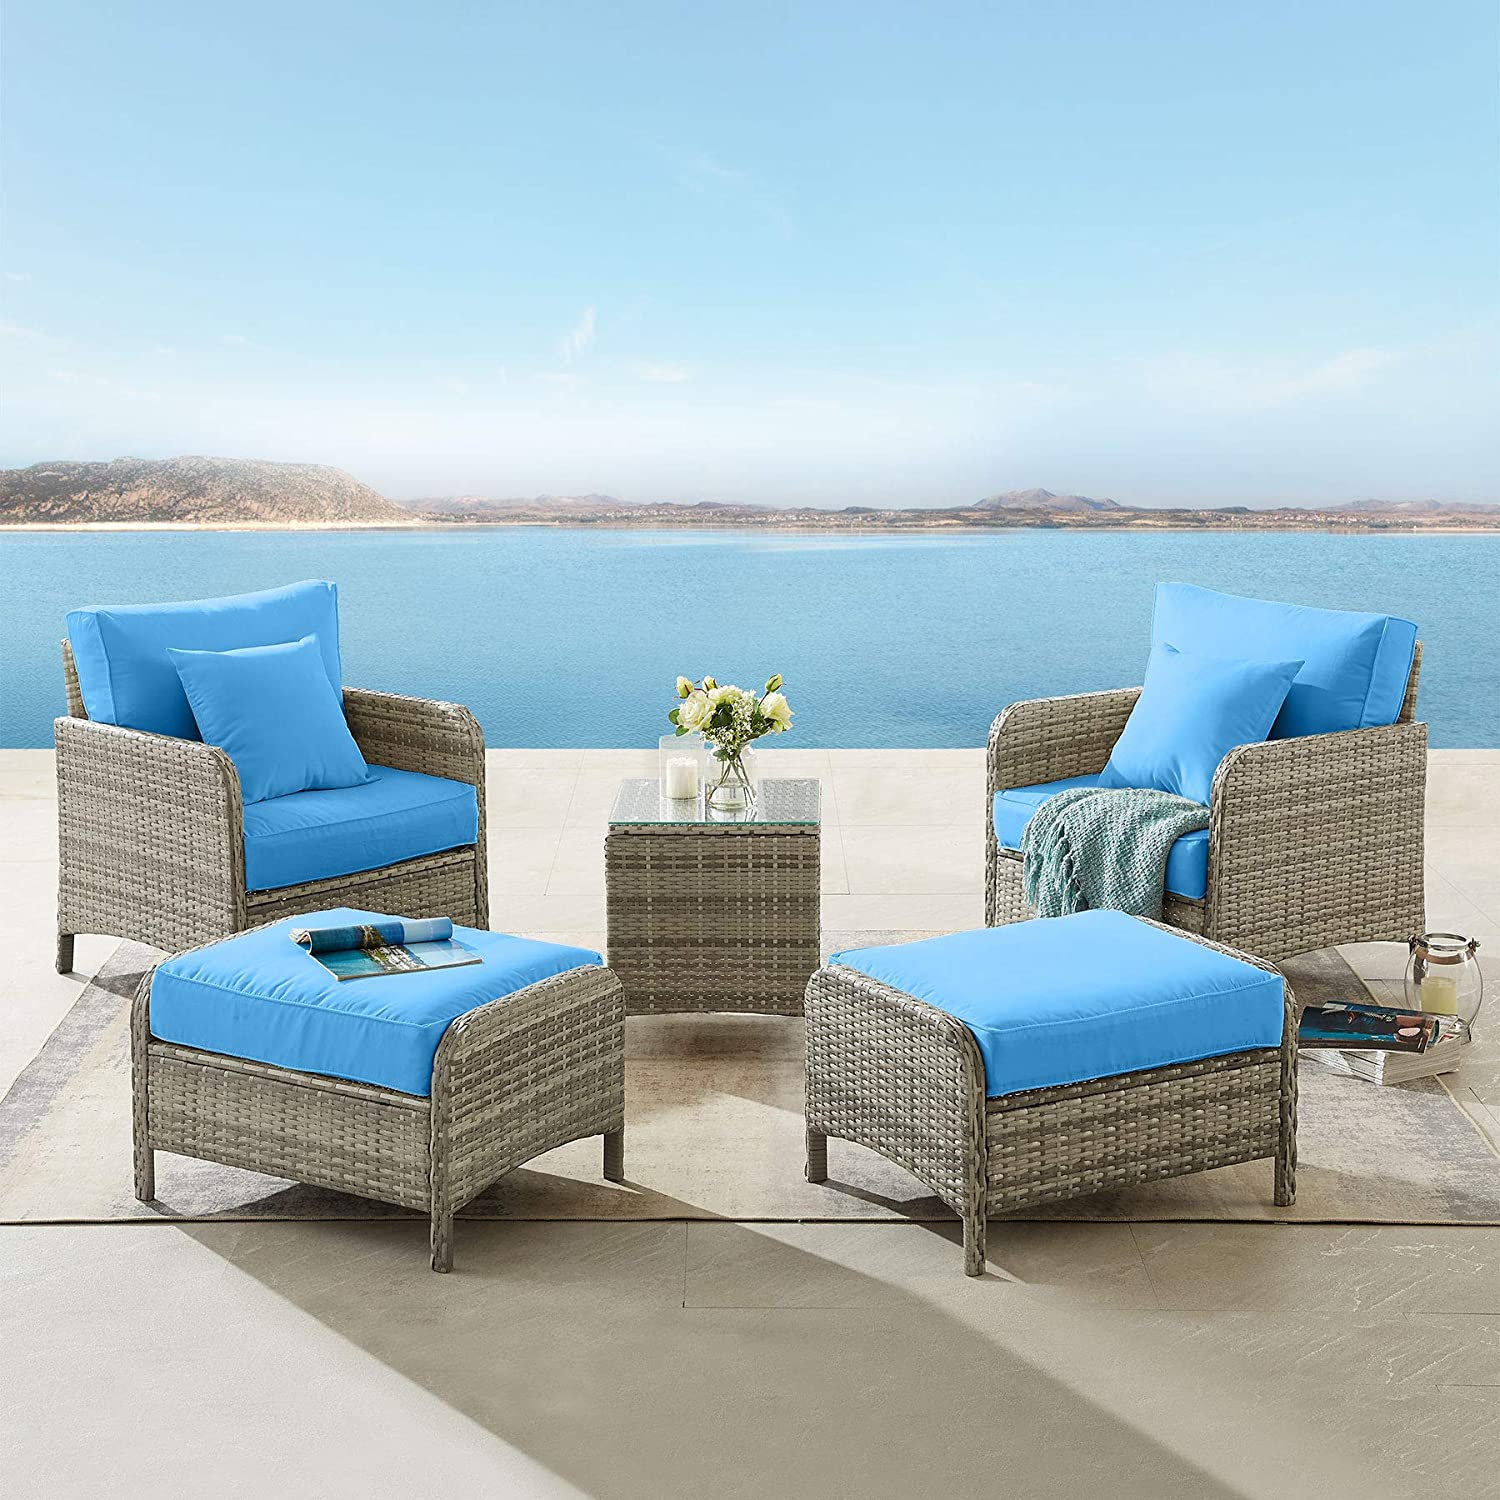 tribesigns 5 pieces patio furniture set outdoor chairs with ottoman set wicker sofa rattan couch conversation lounge set with cushions and glass